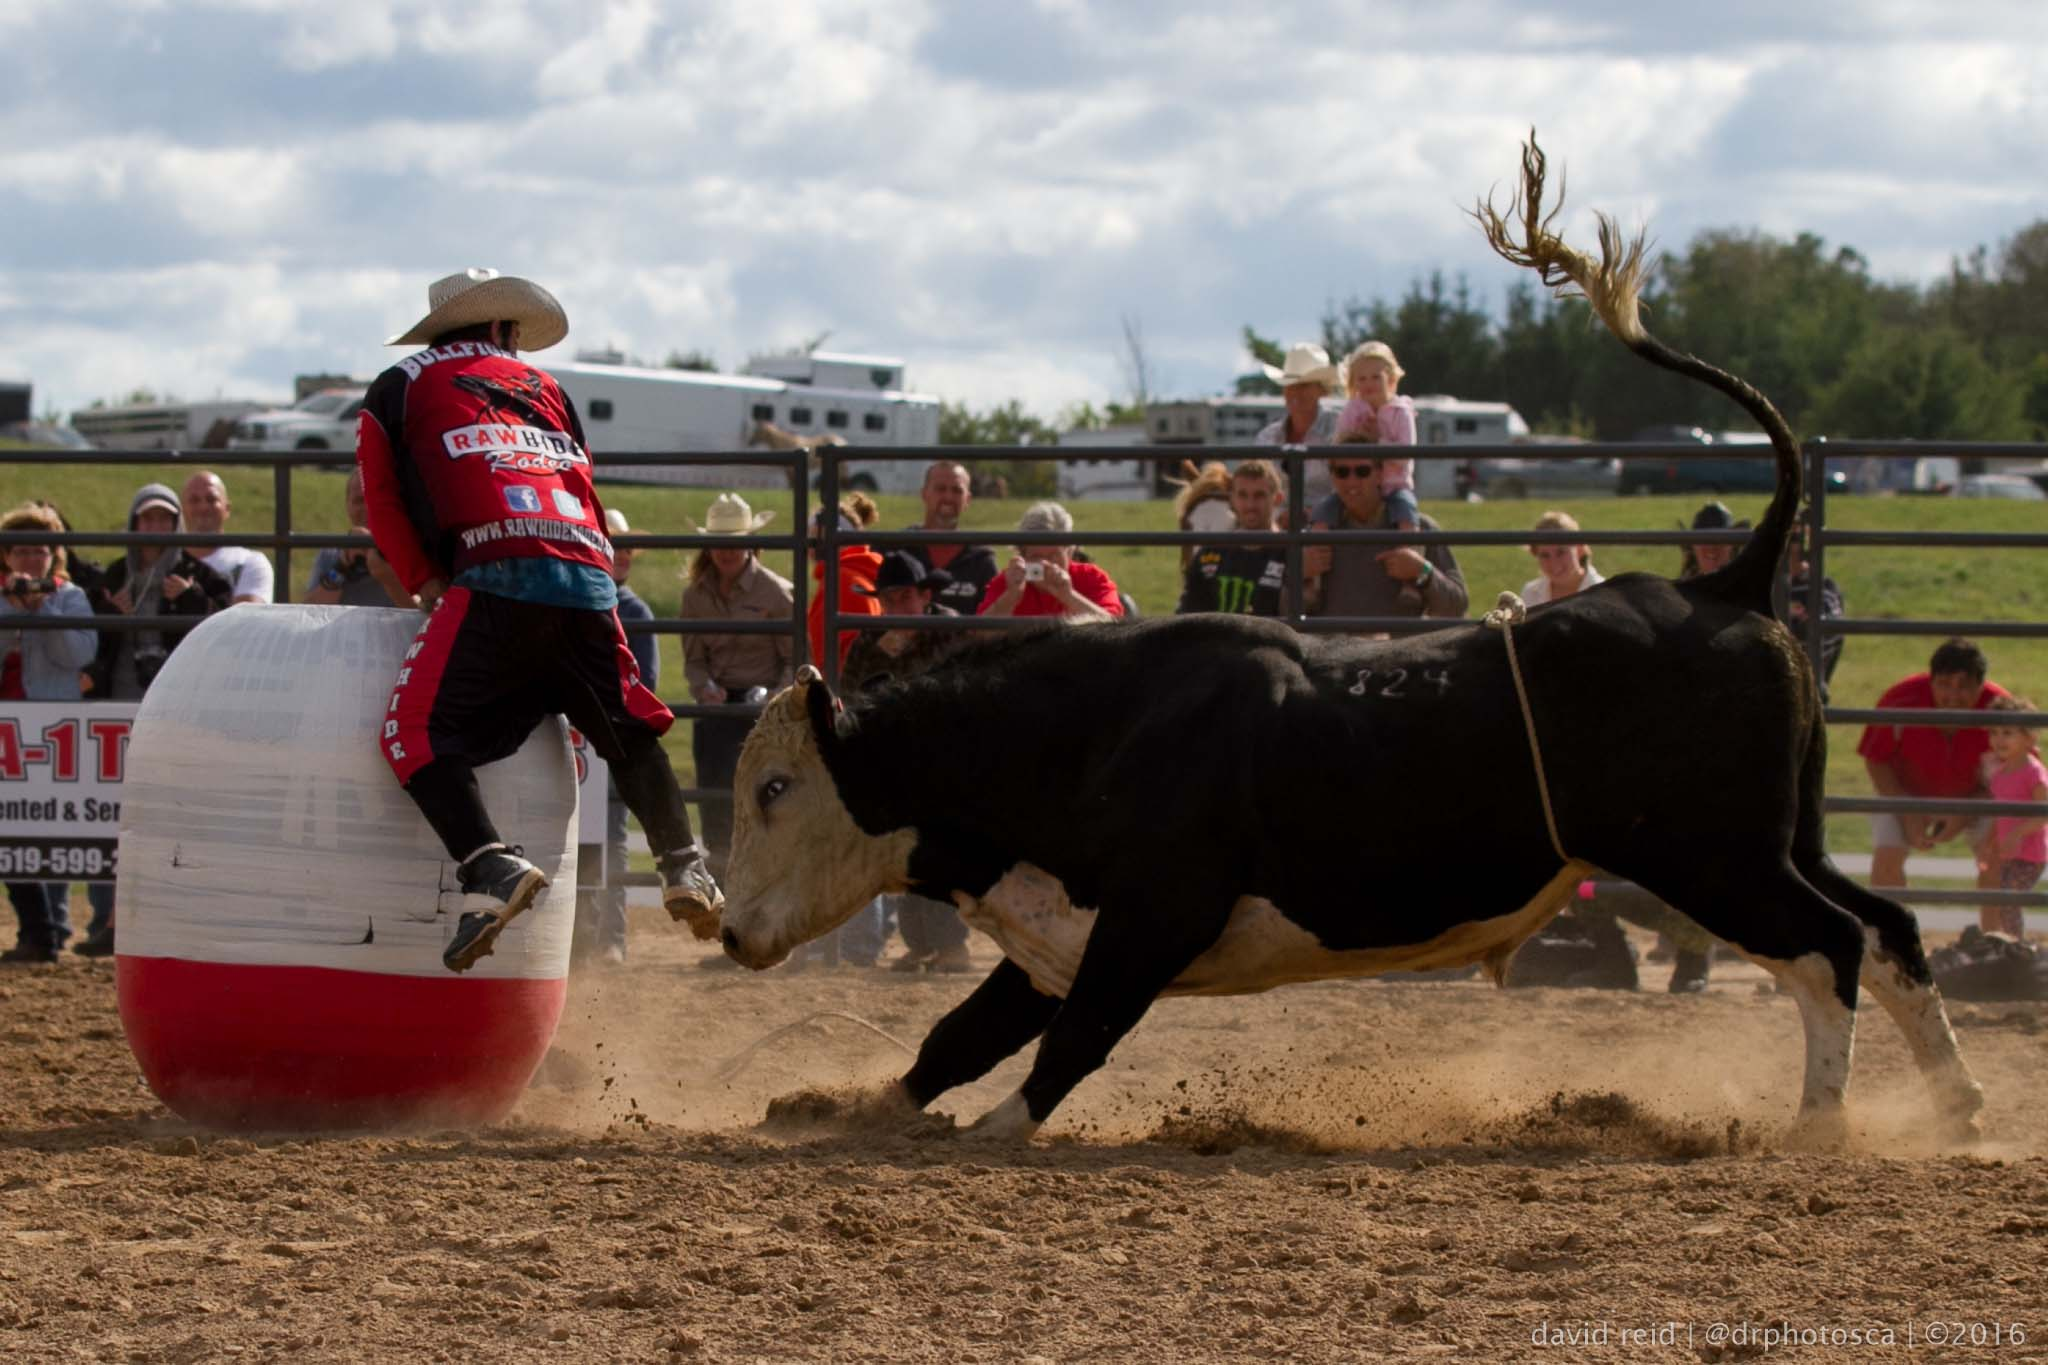 Rawhide Rodeo photos